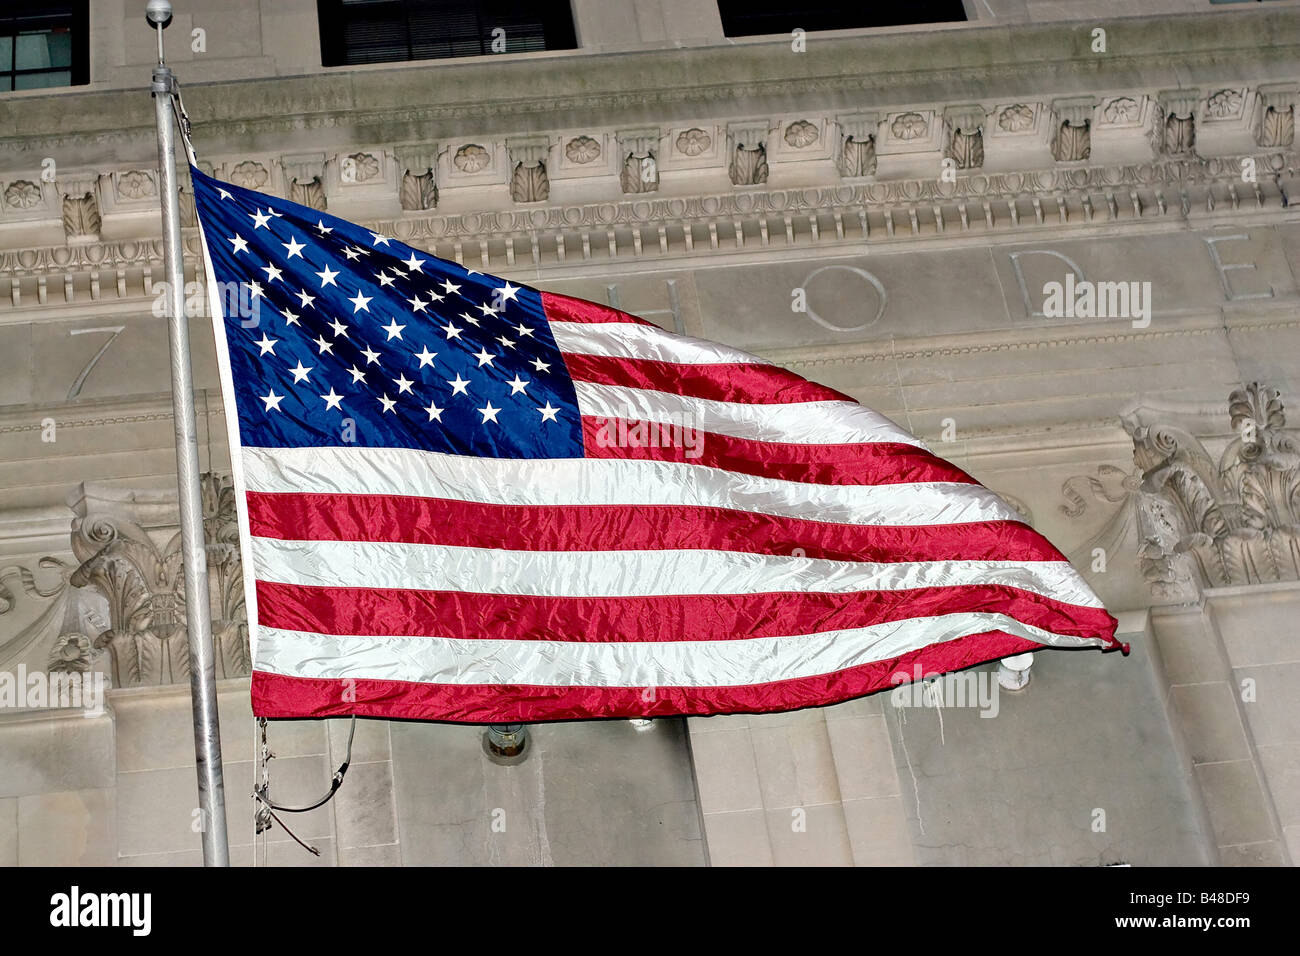 An American flag flying in front of some classic architecture - Stock Image